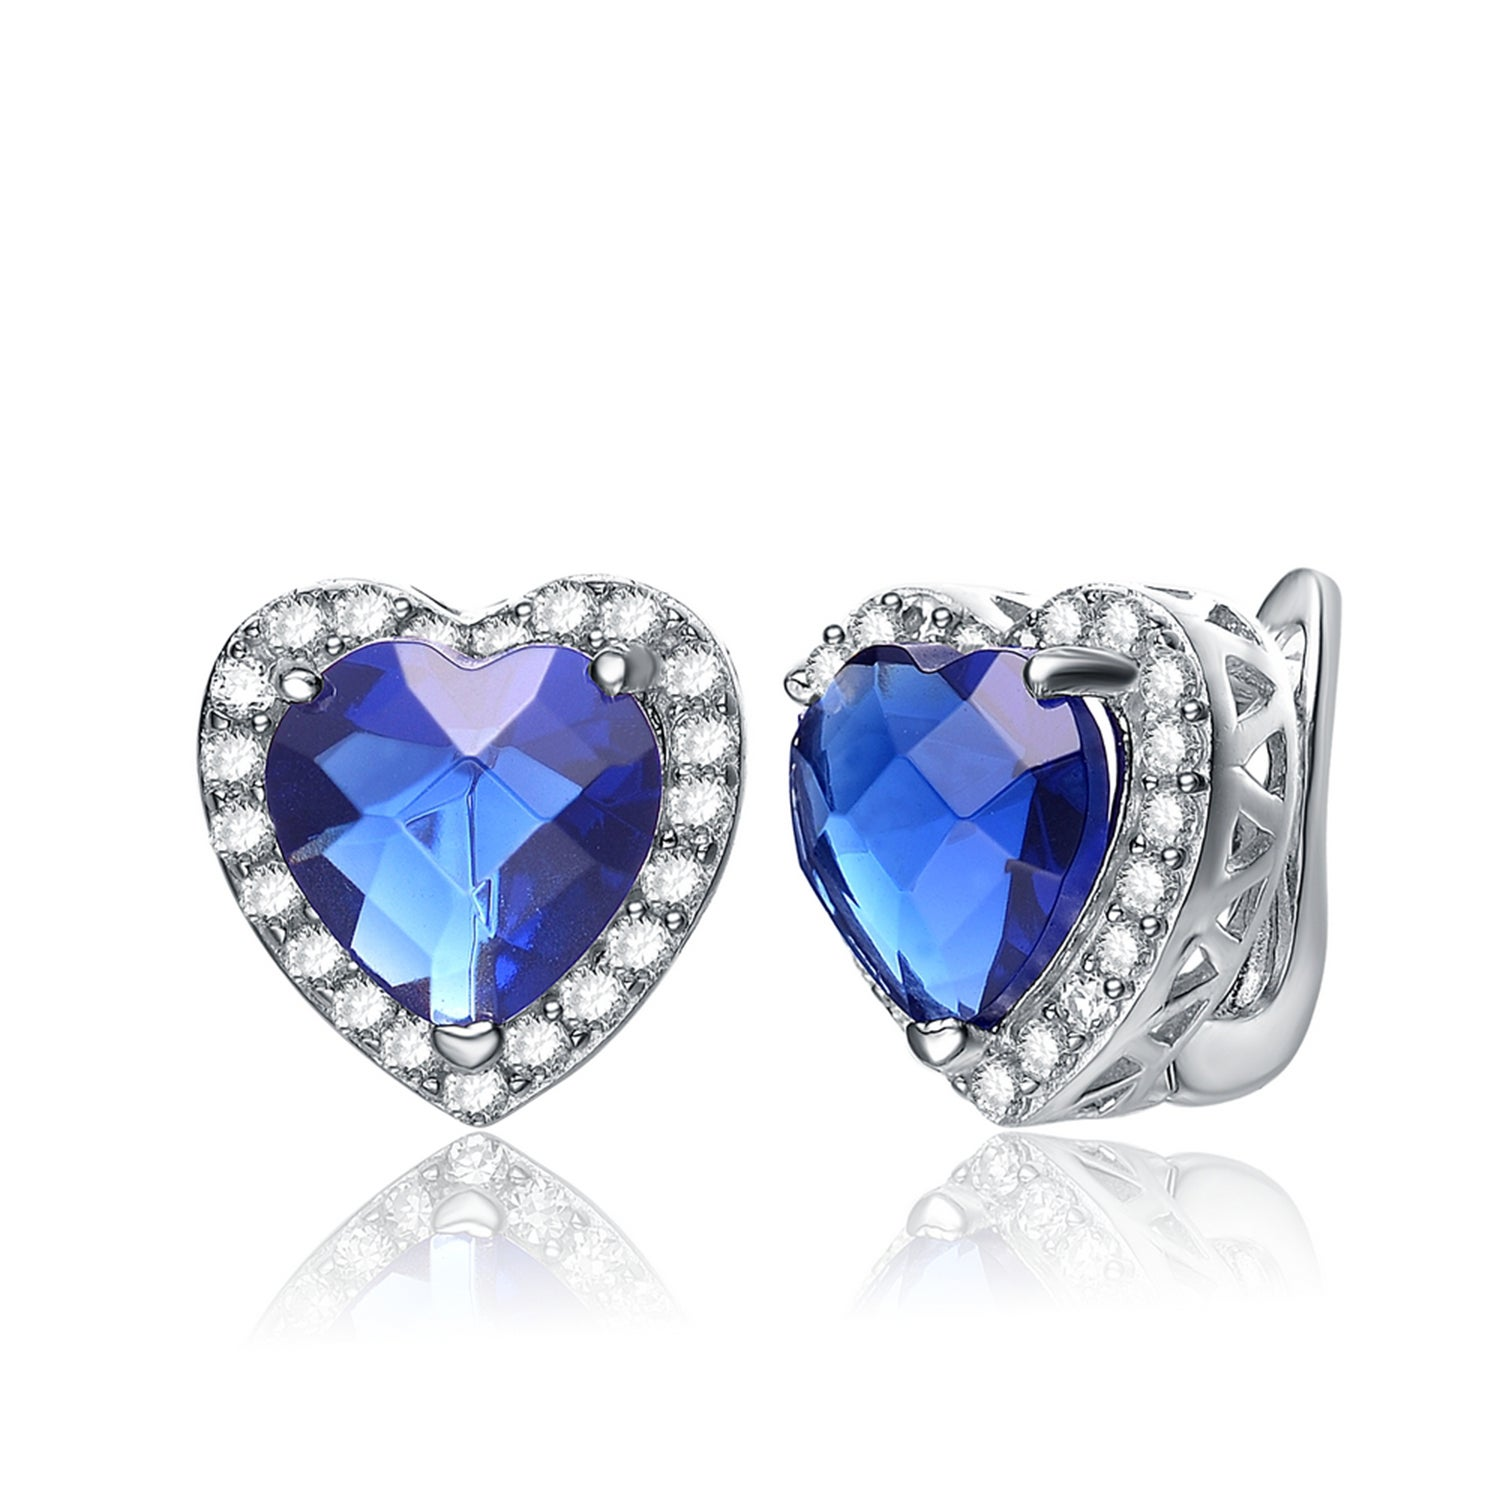 Collette Z Sterling Silver Heart Cut Blue Cubic Zirconia Earrings Free Shipping On Orders Over 45 7941466